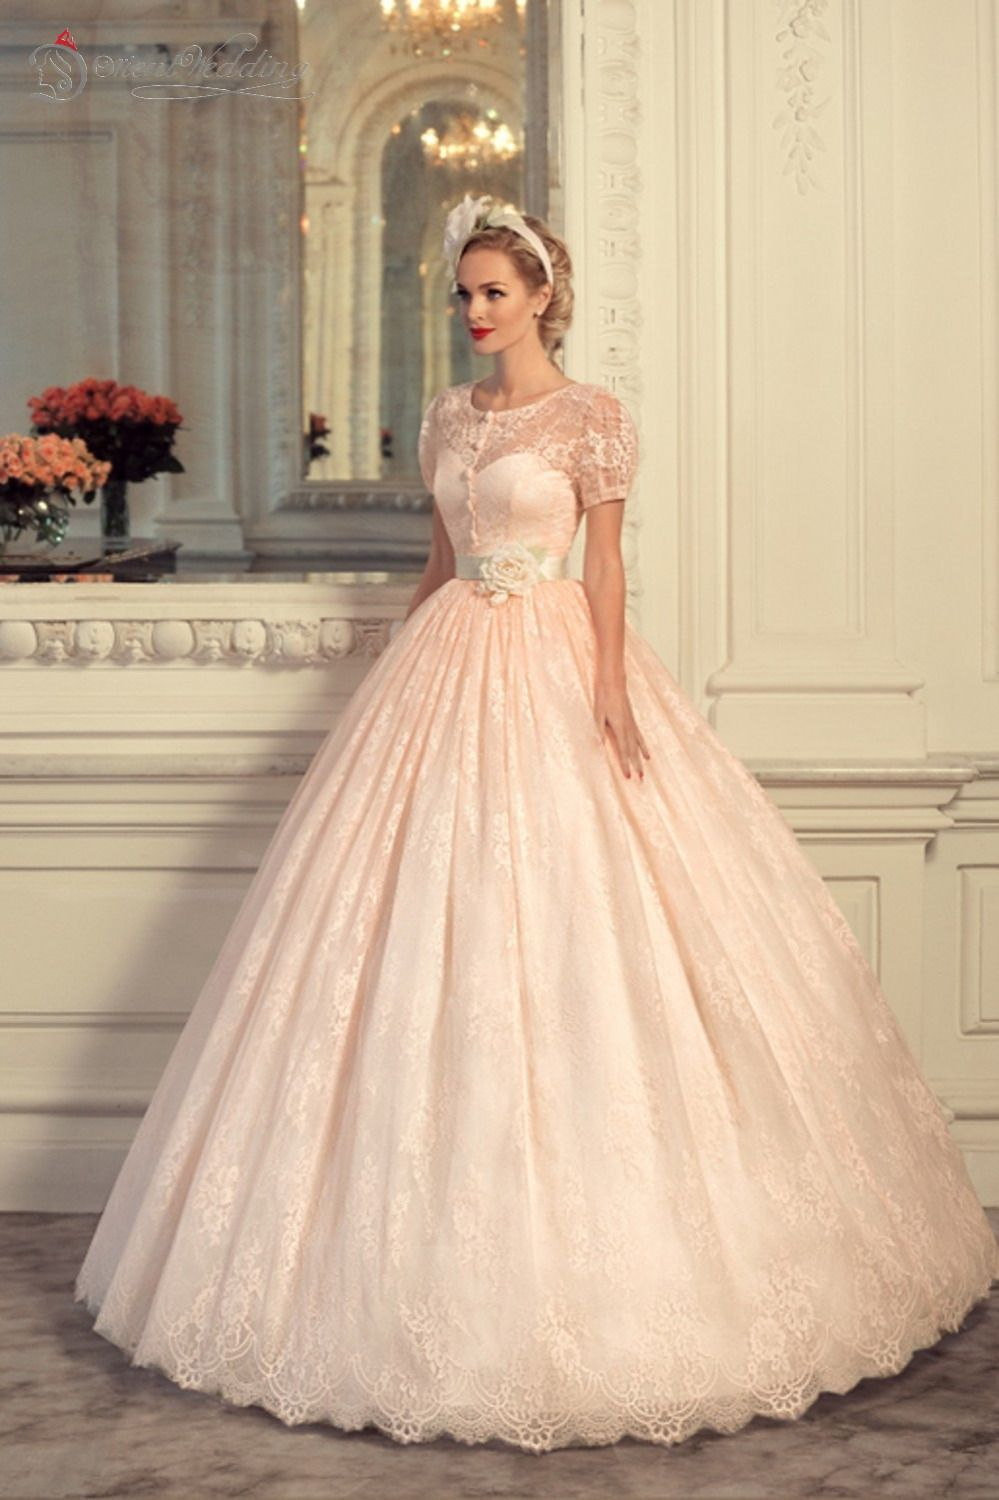 Pin By Rosa Mendez On Everything Wedding Gowns Blush Pink Wedding Dress Pretty Dresses [ 1500 x 999 Pixel ]